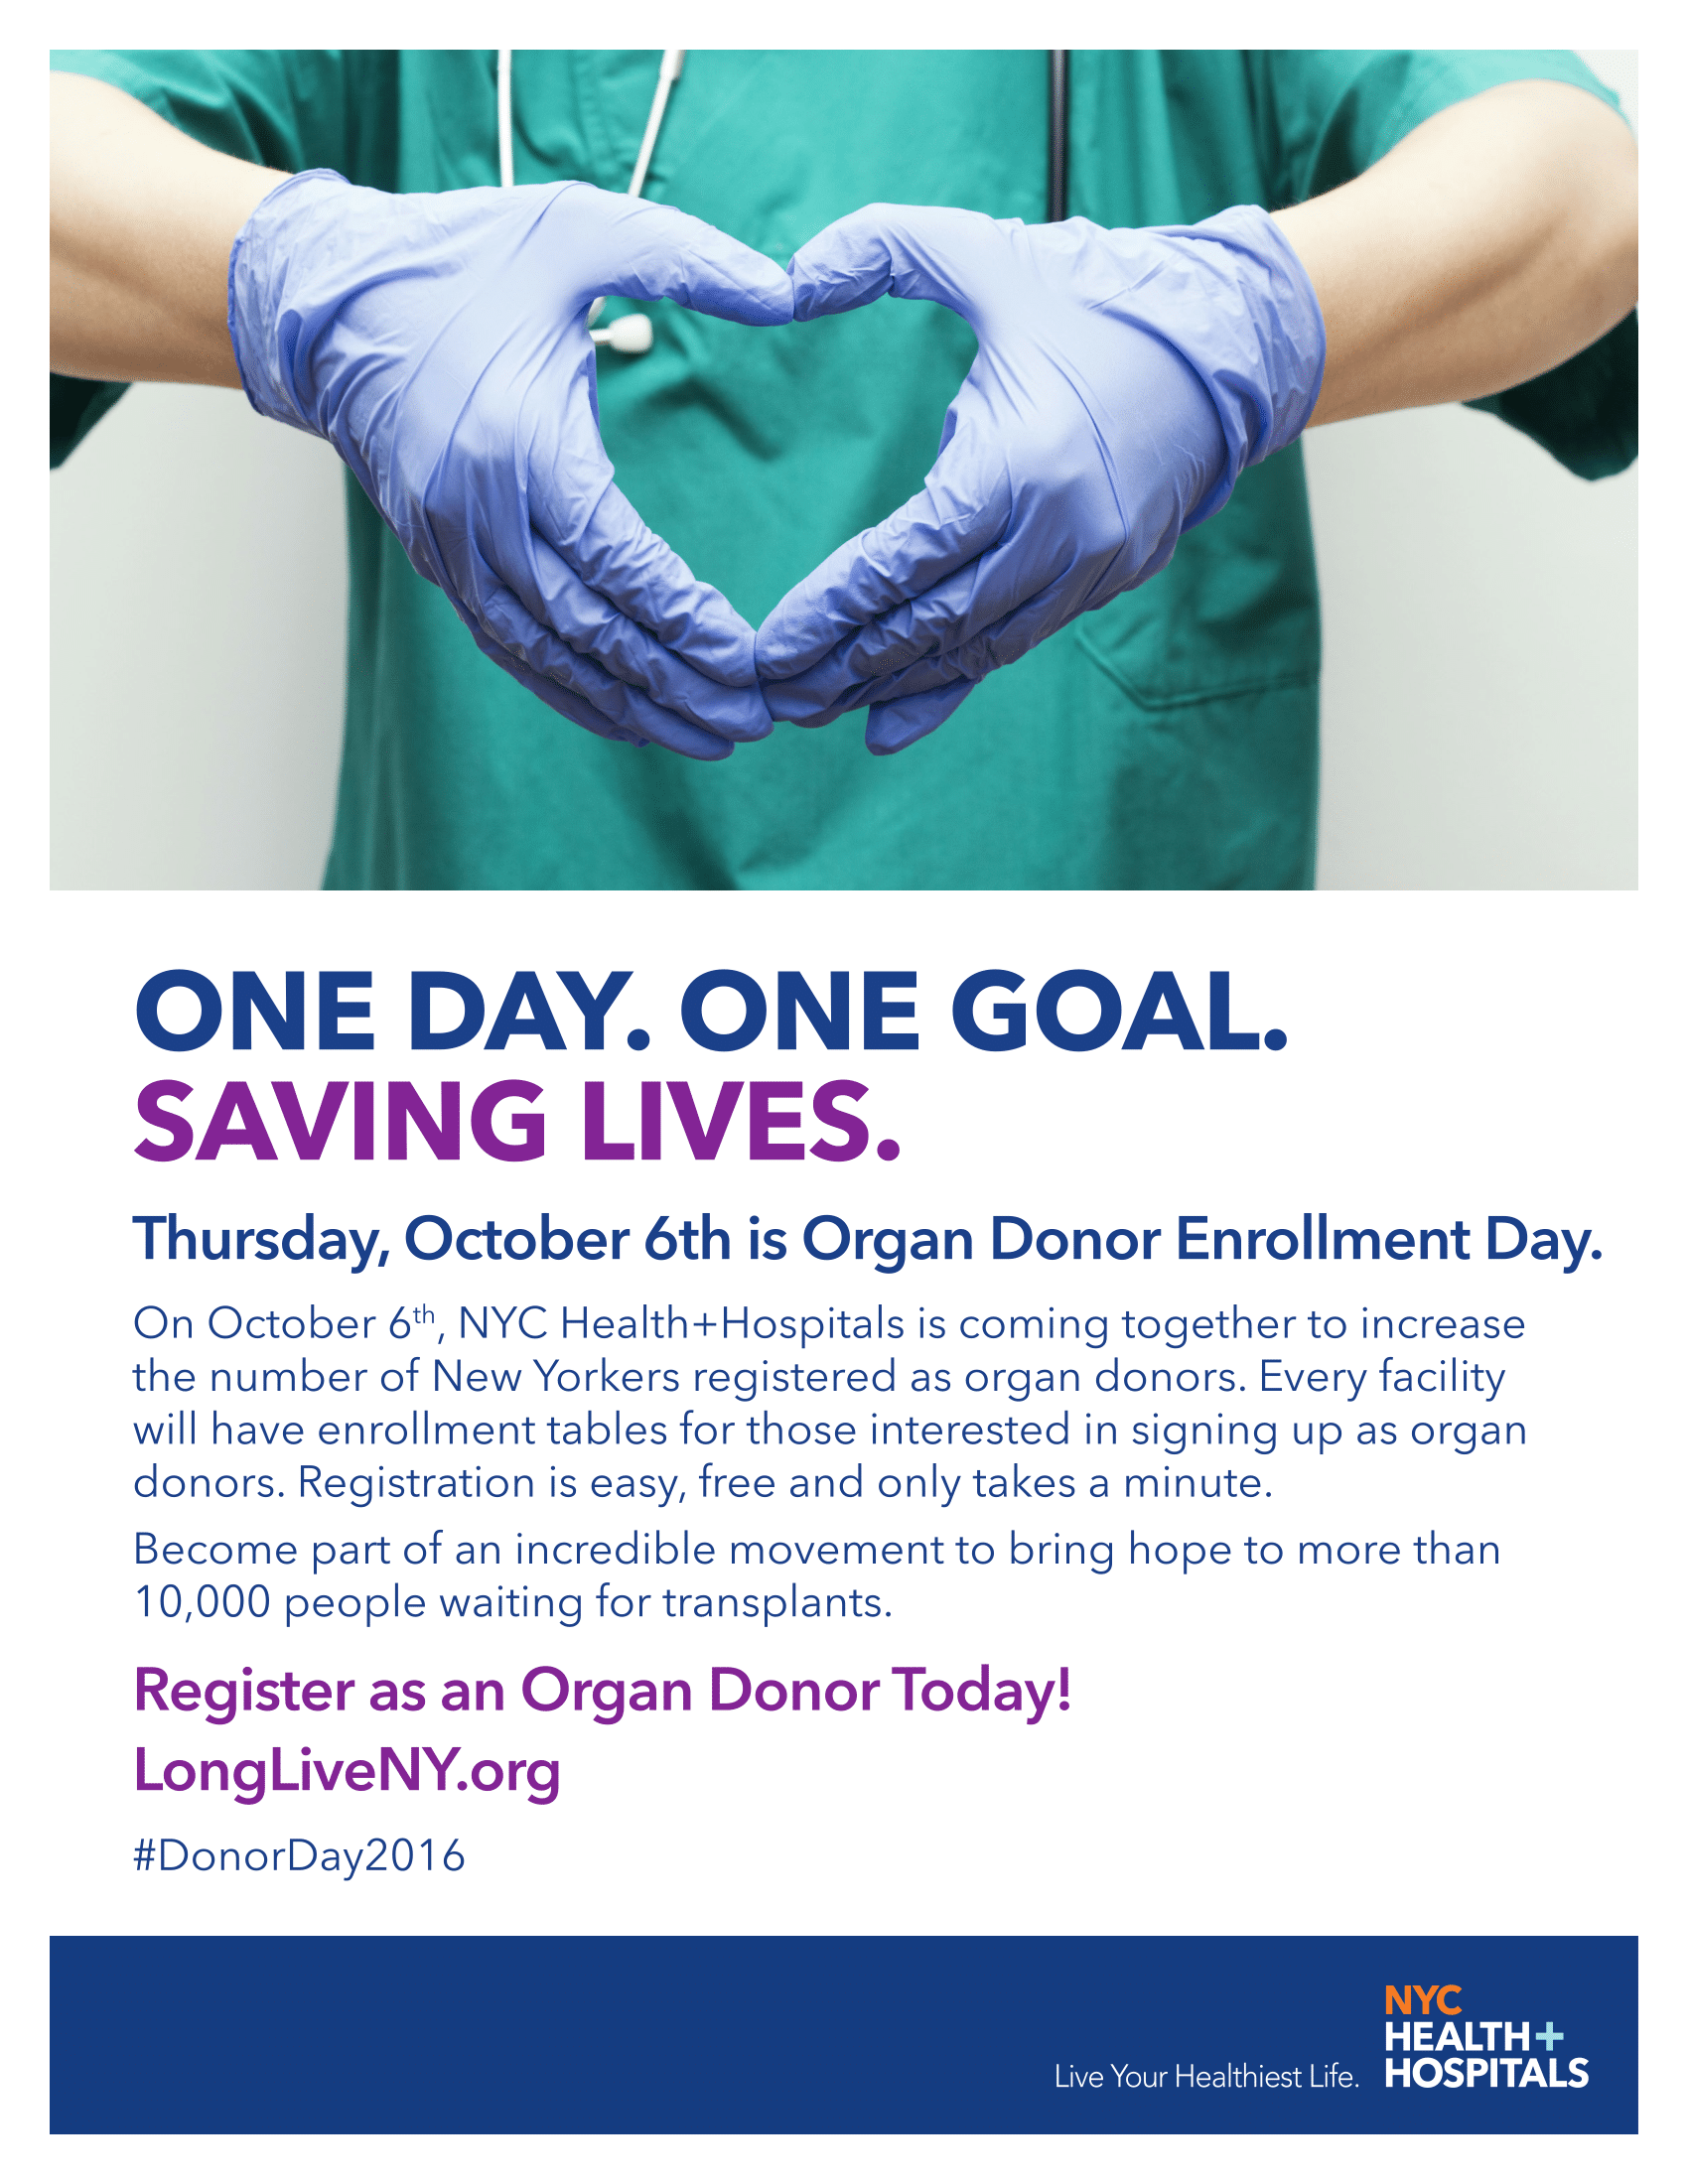 OrganDonationDay_flyer-1.png